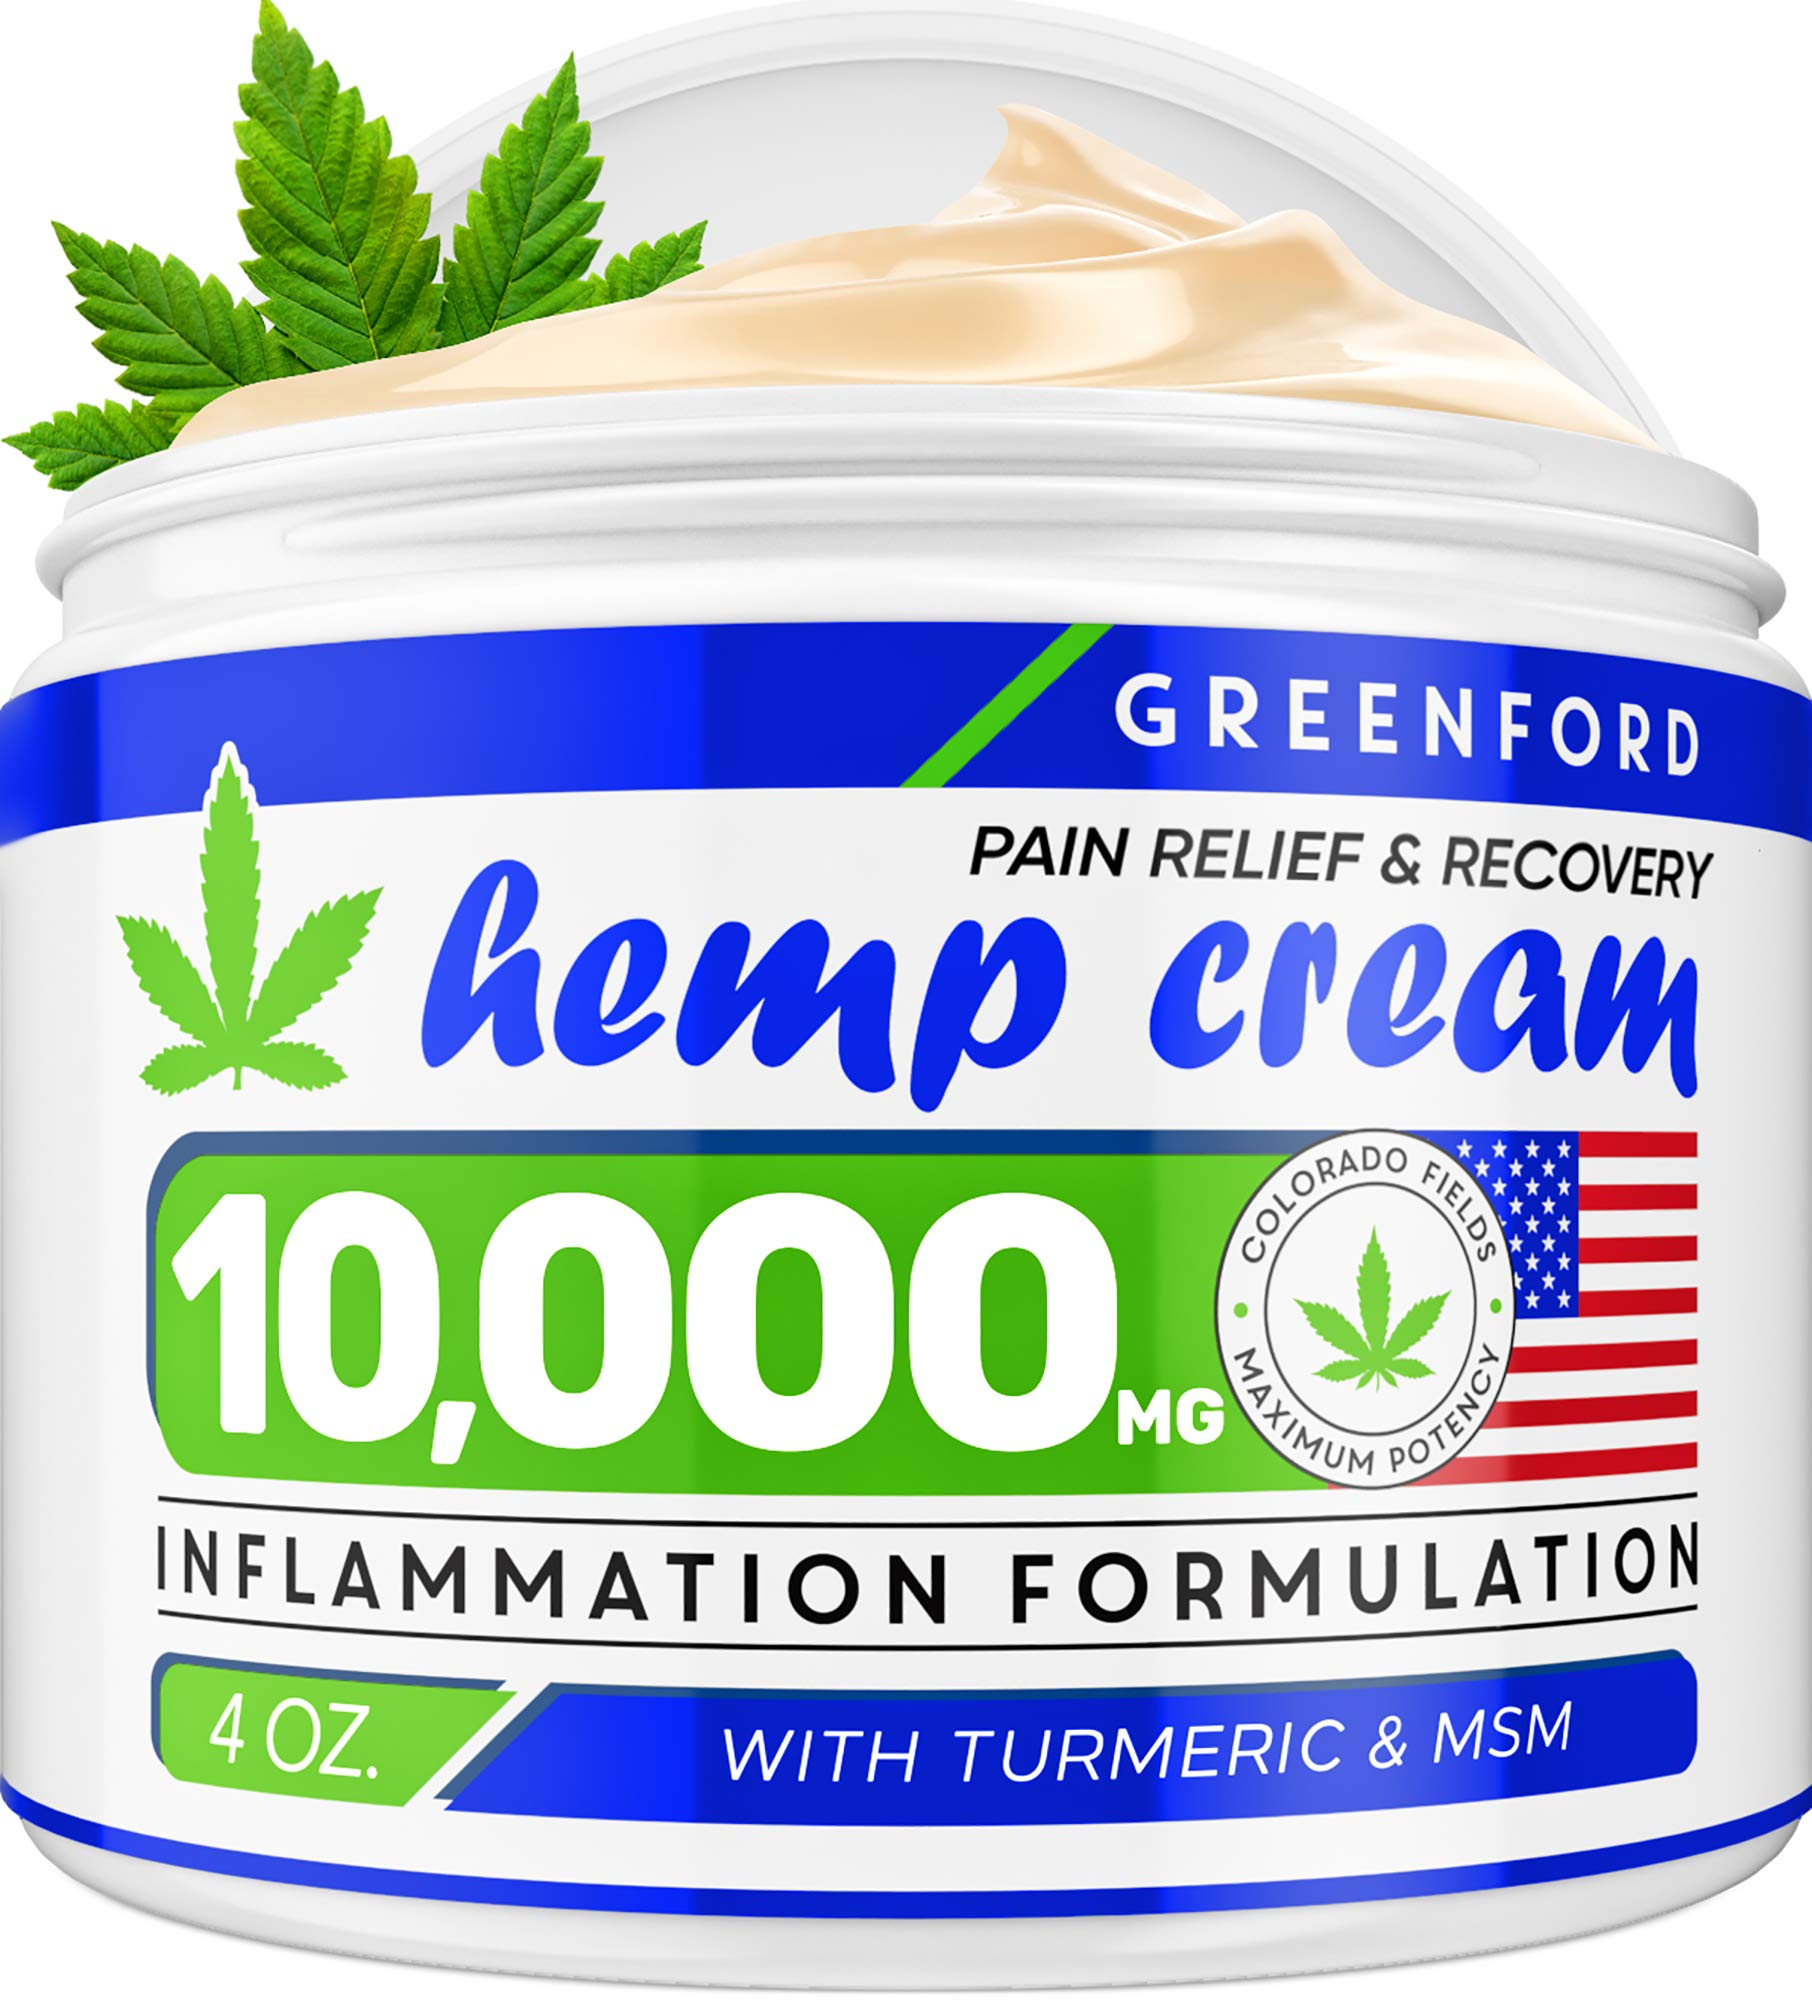 Pain Relief Hemp Cream 10,000mg | 4oz - Hemp Extract Cream for Inflammation & Sore Muscles - Natural Joint, Arthritis & Back Pain Support - Made in USA - Arnica, MSM, Turmeric - Best for Skin Health by Greenford